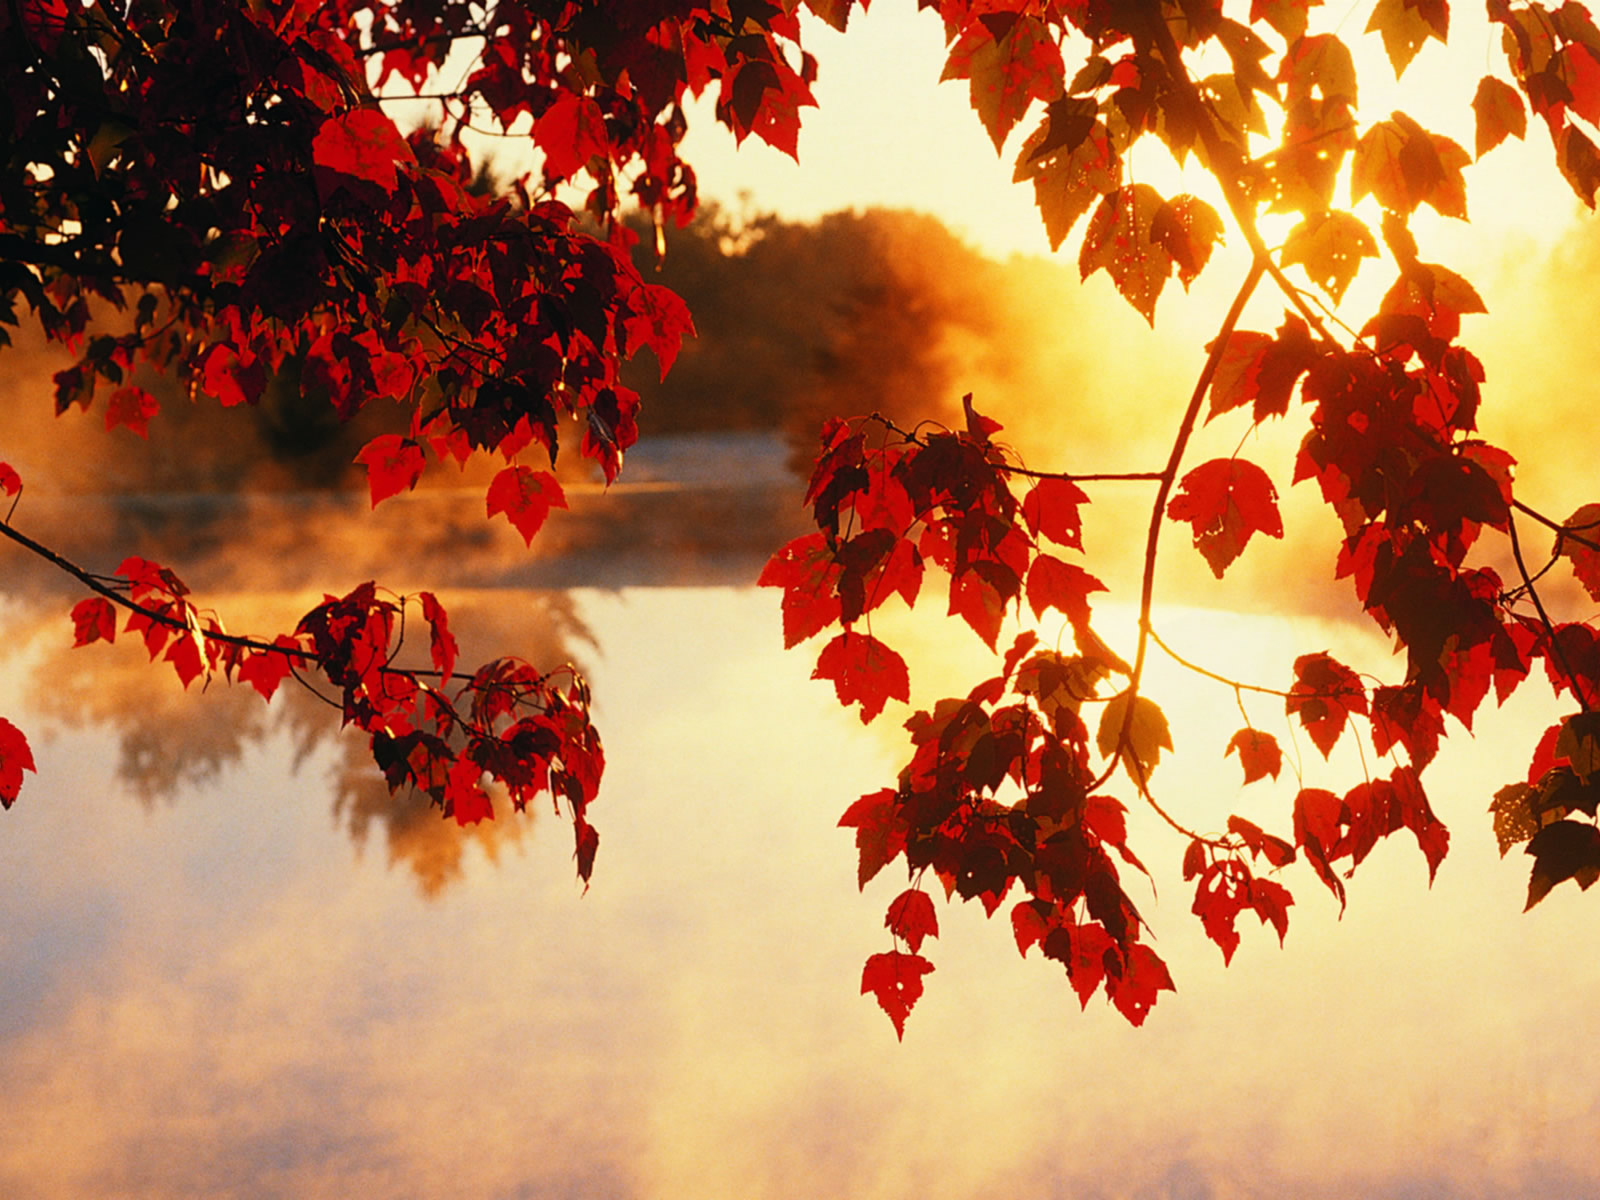 autumn-jpg-%C3%97-wallpaper-wp6002143